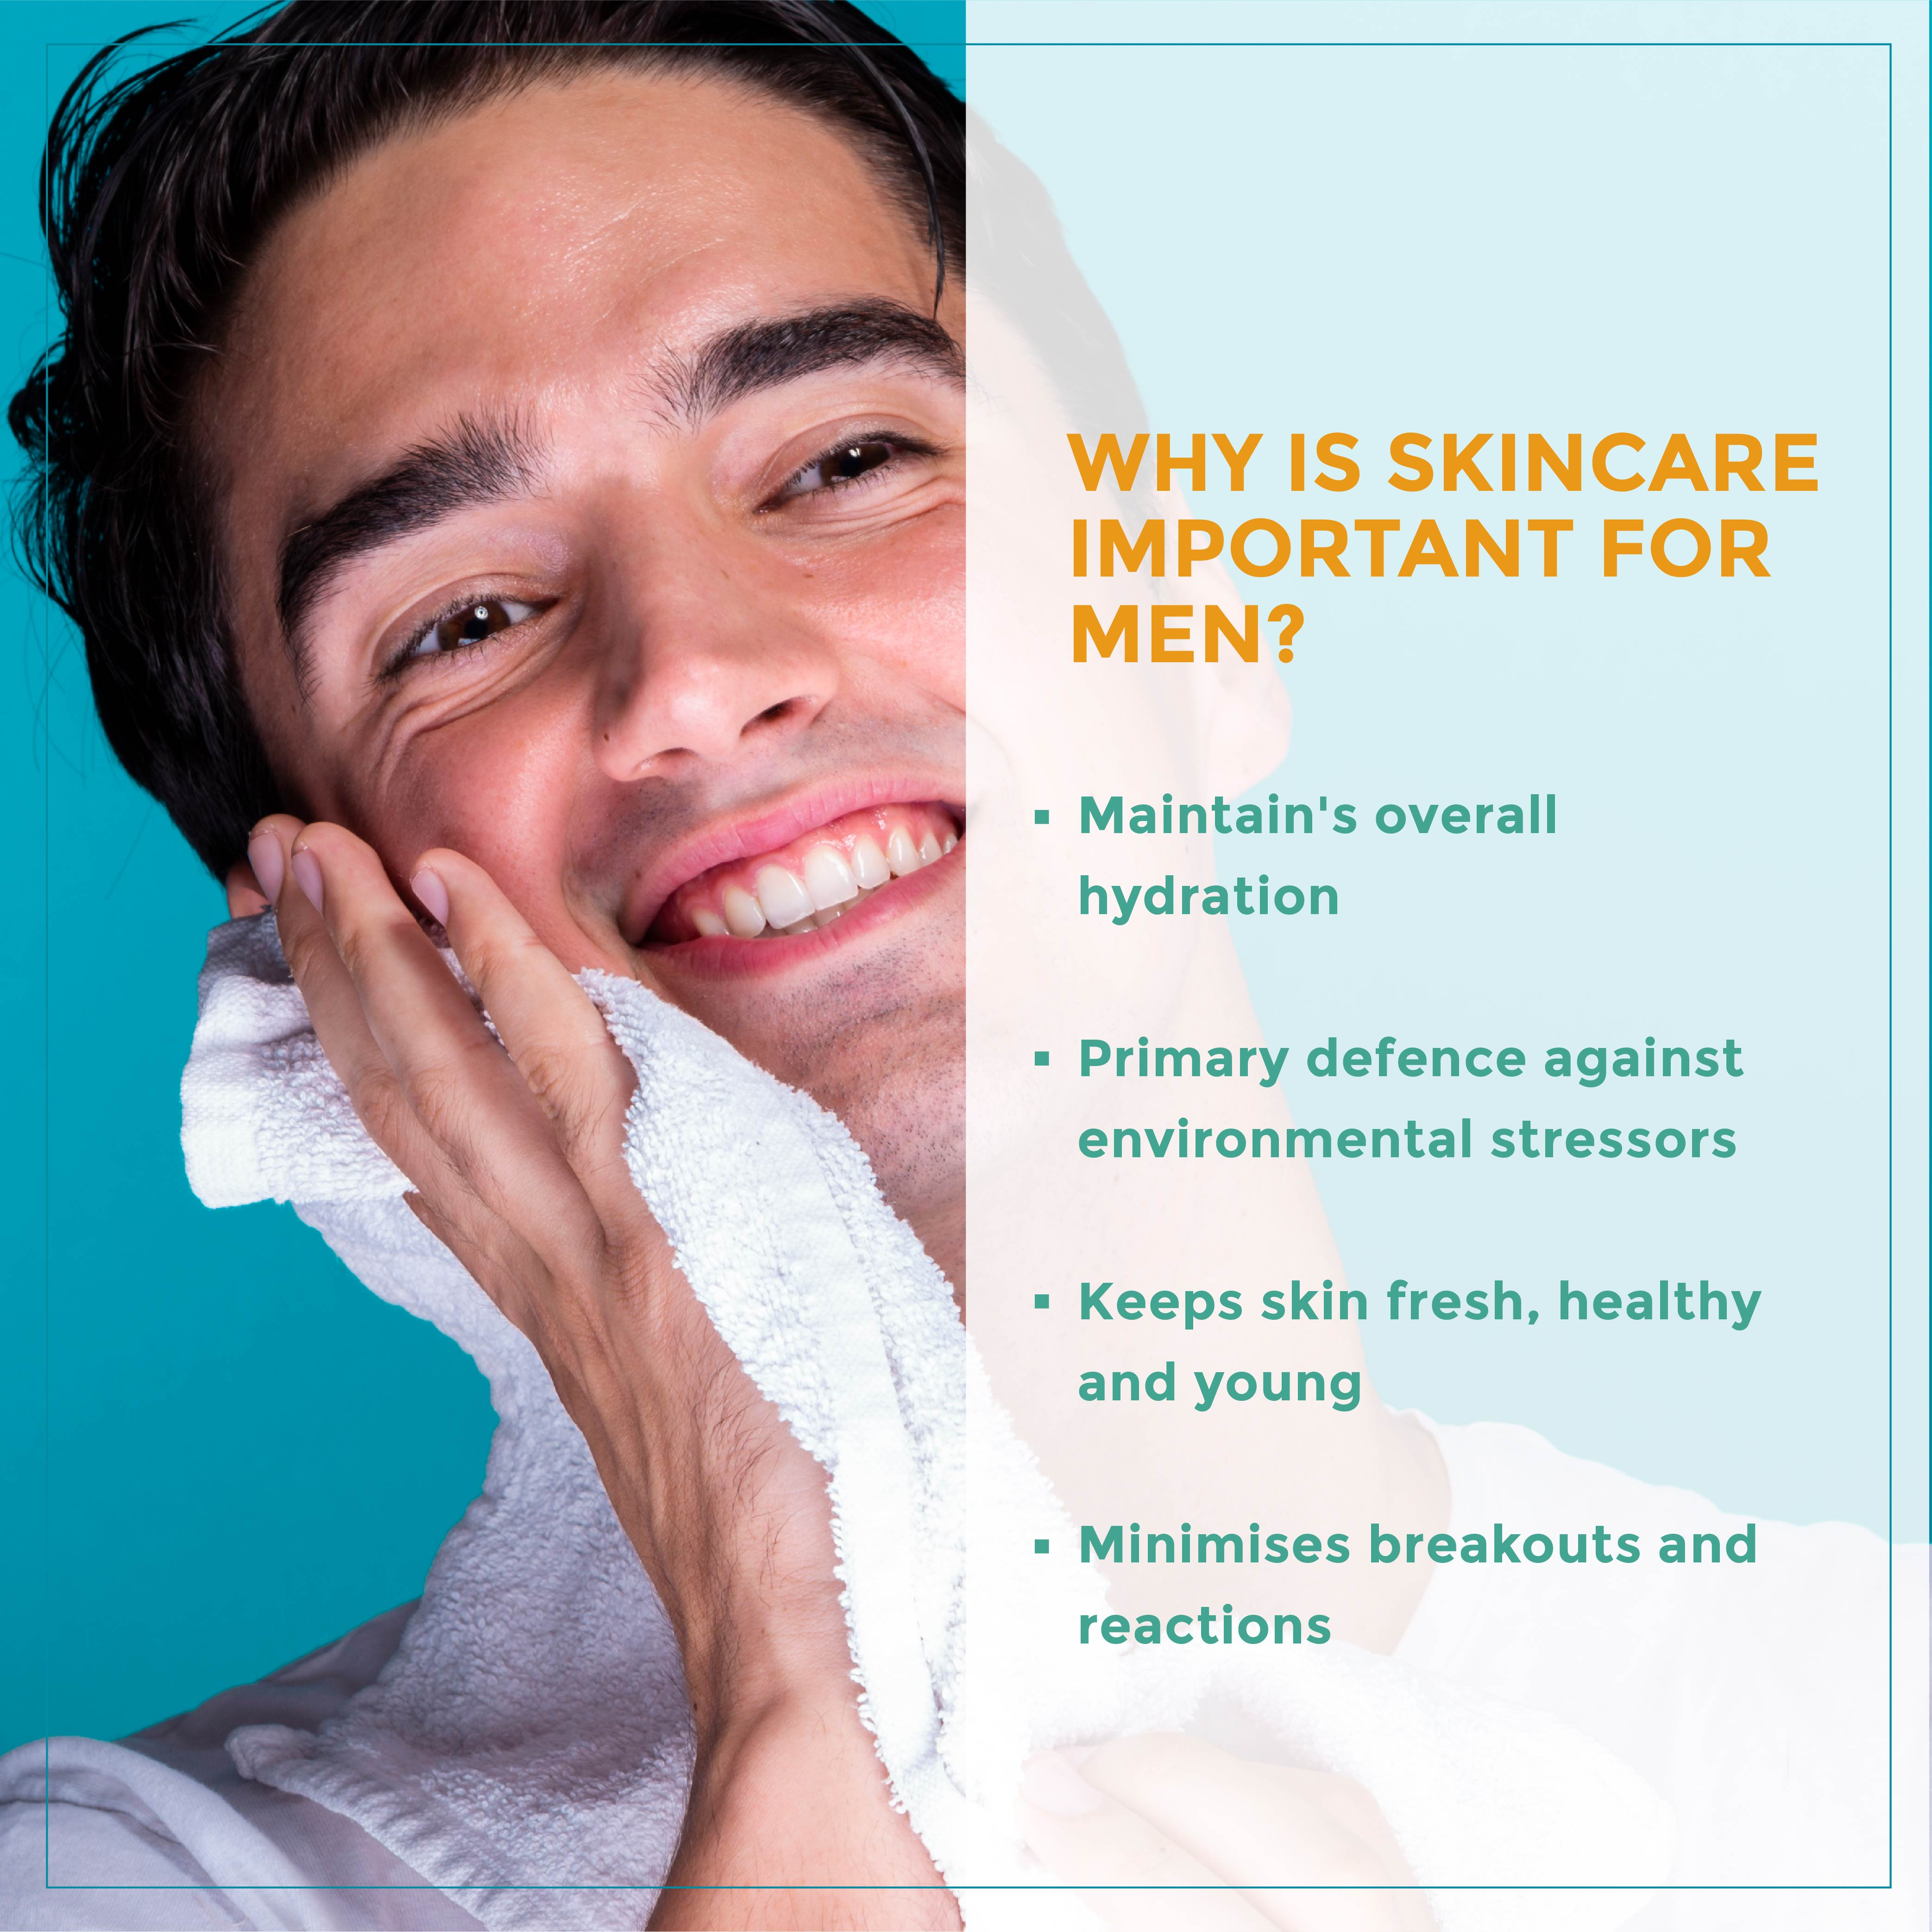 This is an image of why skincare is important for men